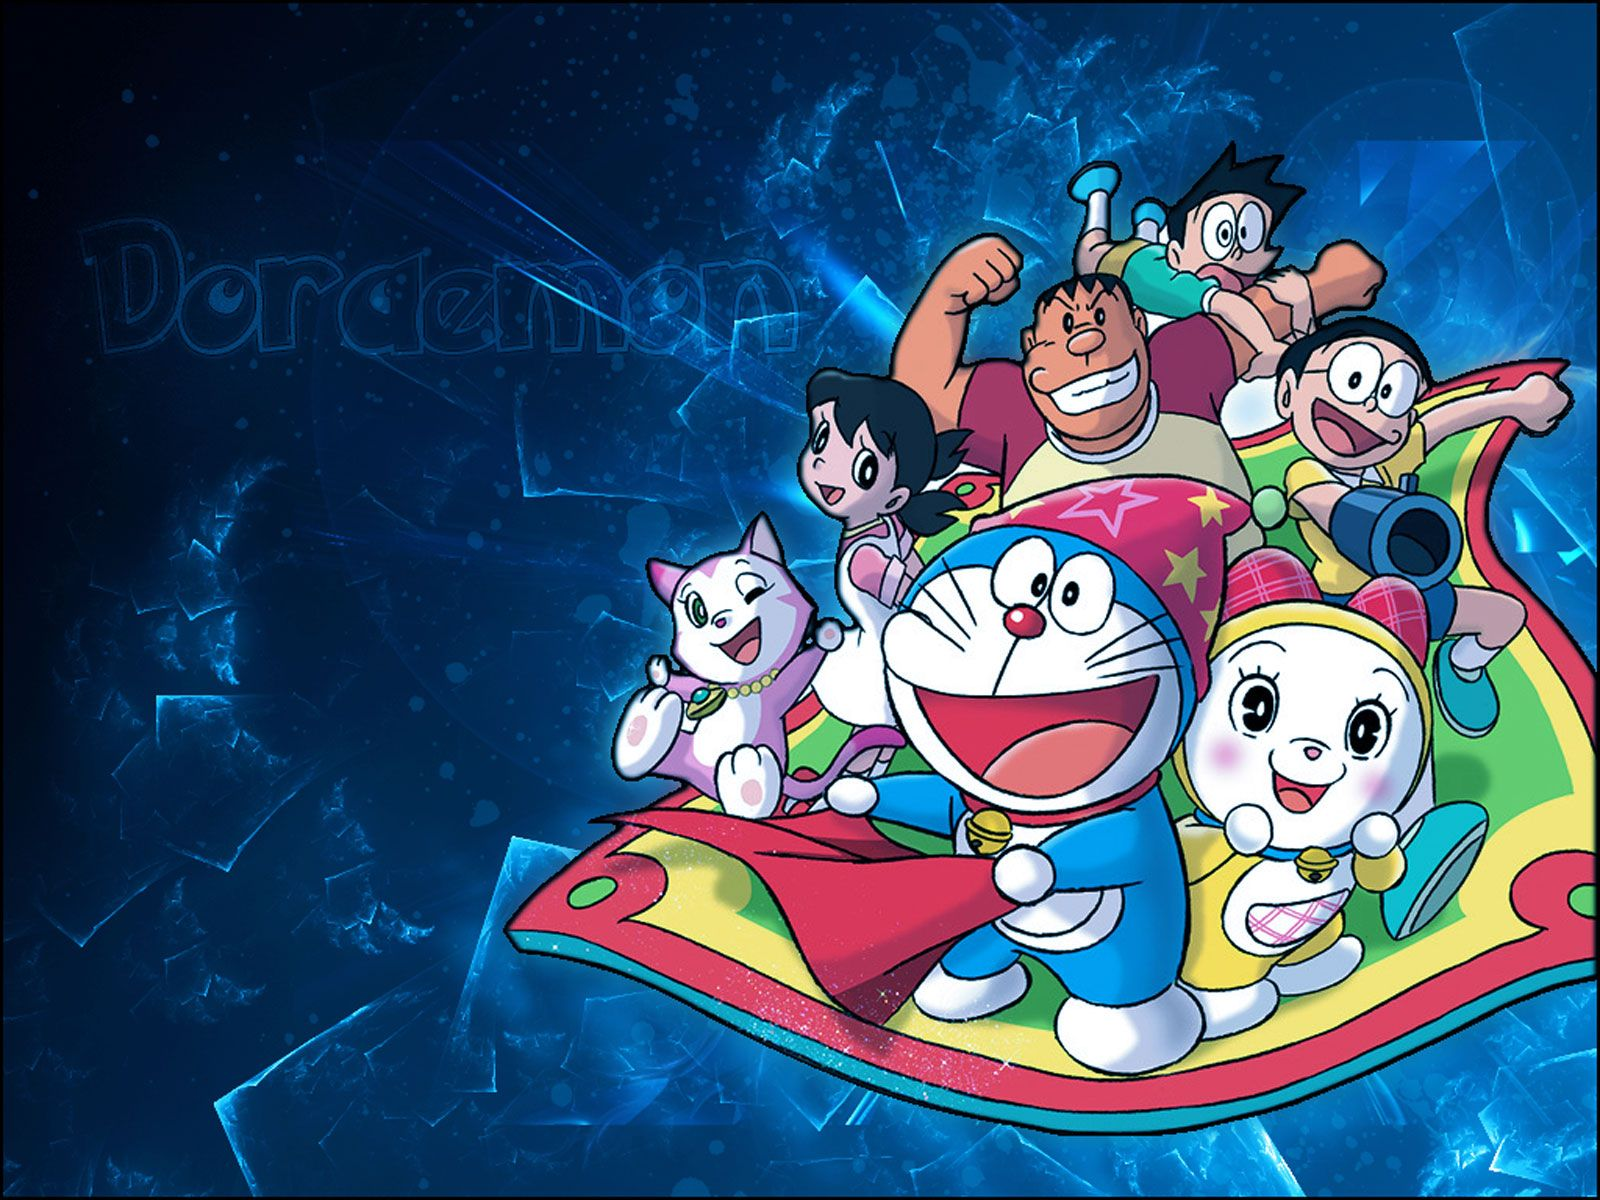 Wallpaper Doraemon Movies Pinterest Wallpapers